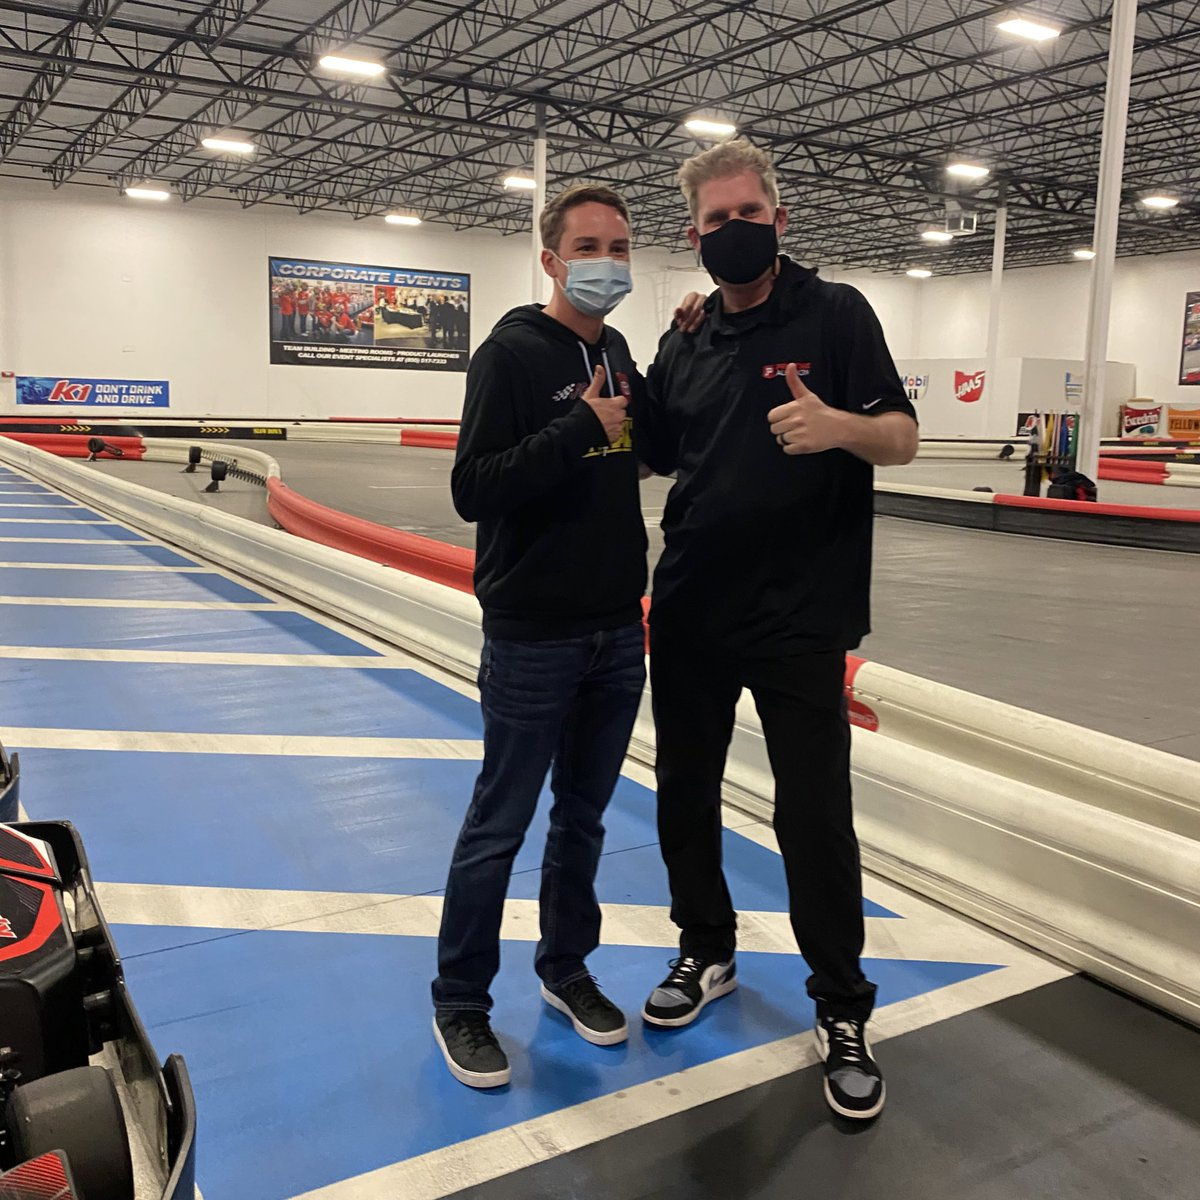 Don't hate when sponsor hang outs end up at the go kart track 😁 thanks for having me @PristineAuction!